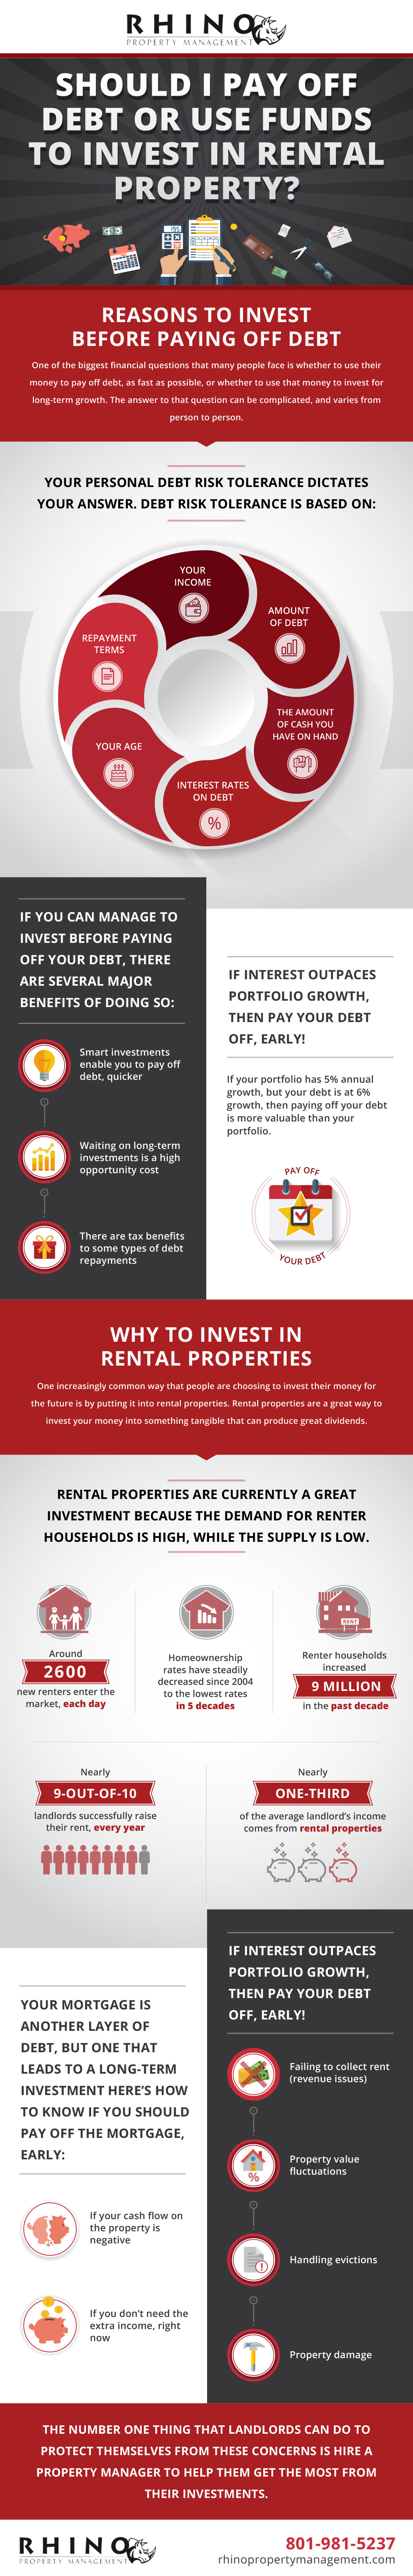 Investing In Rental Properties infographic